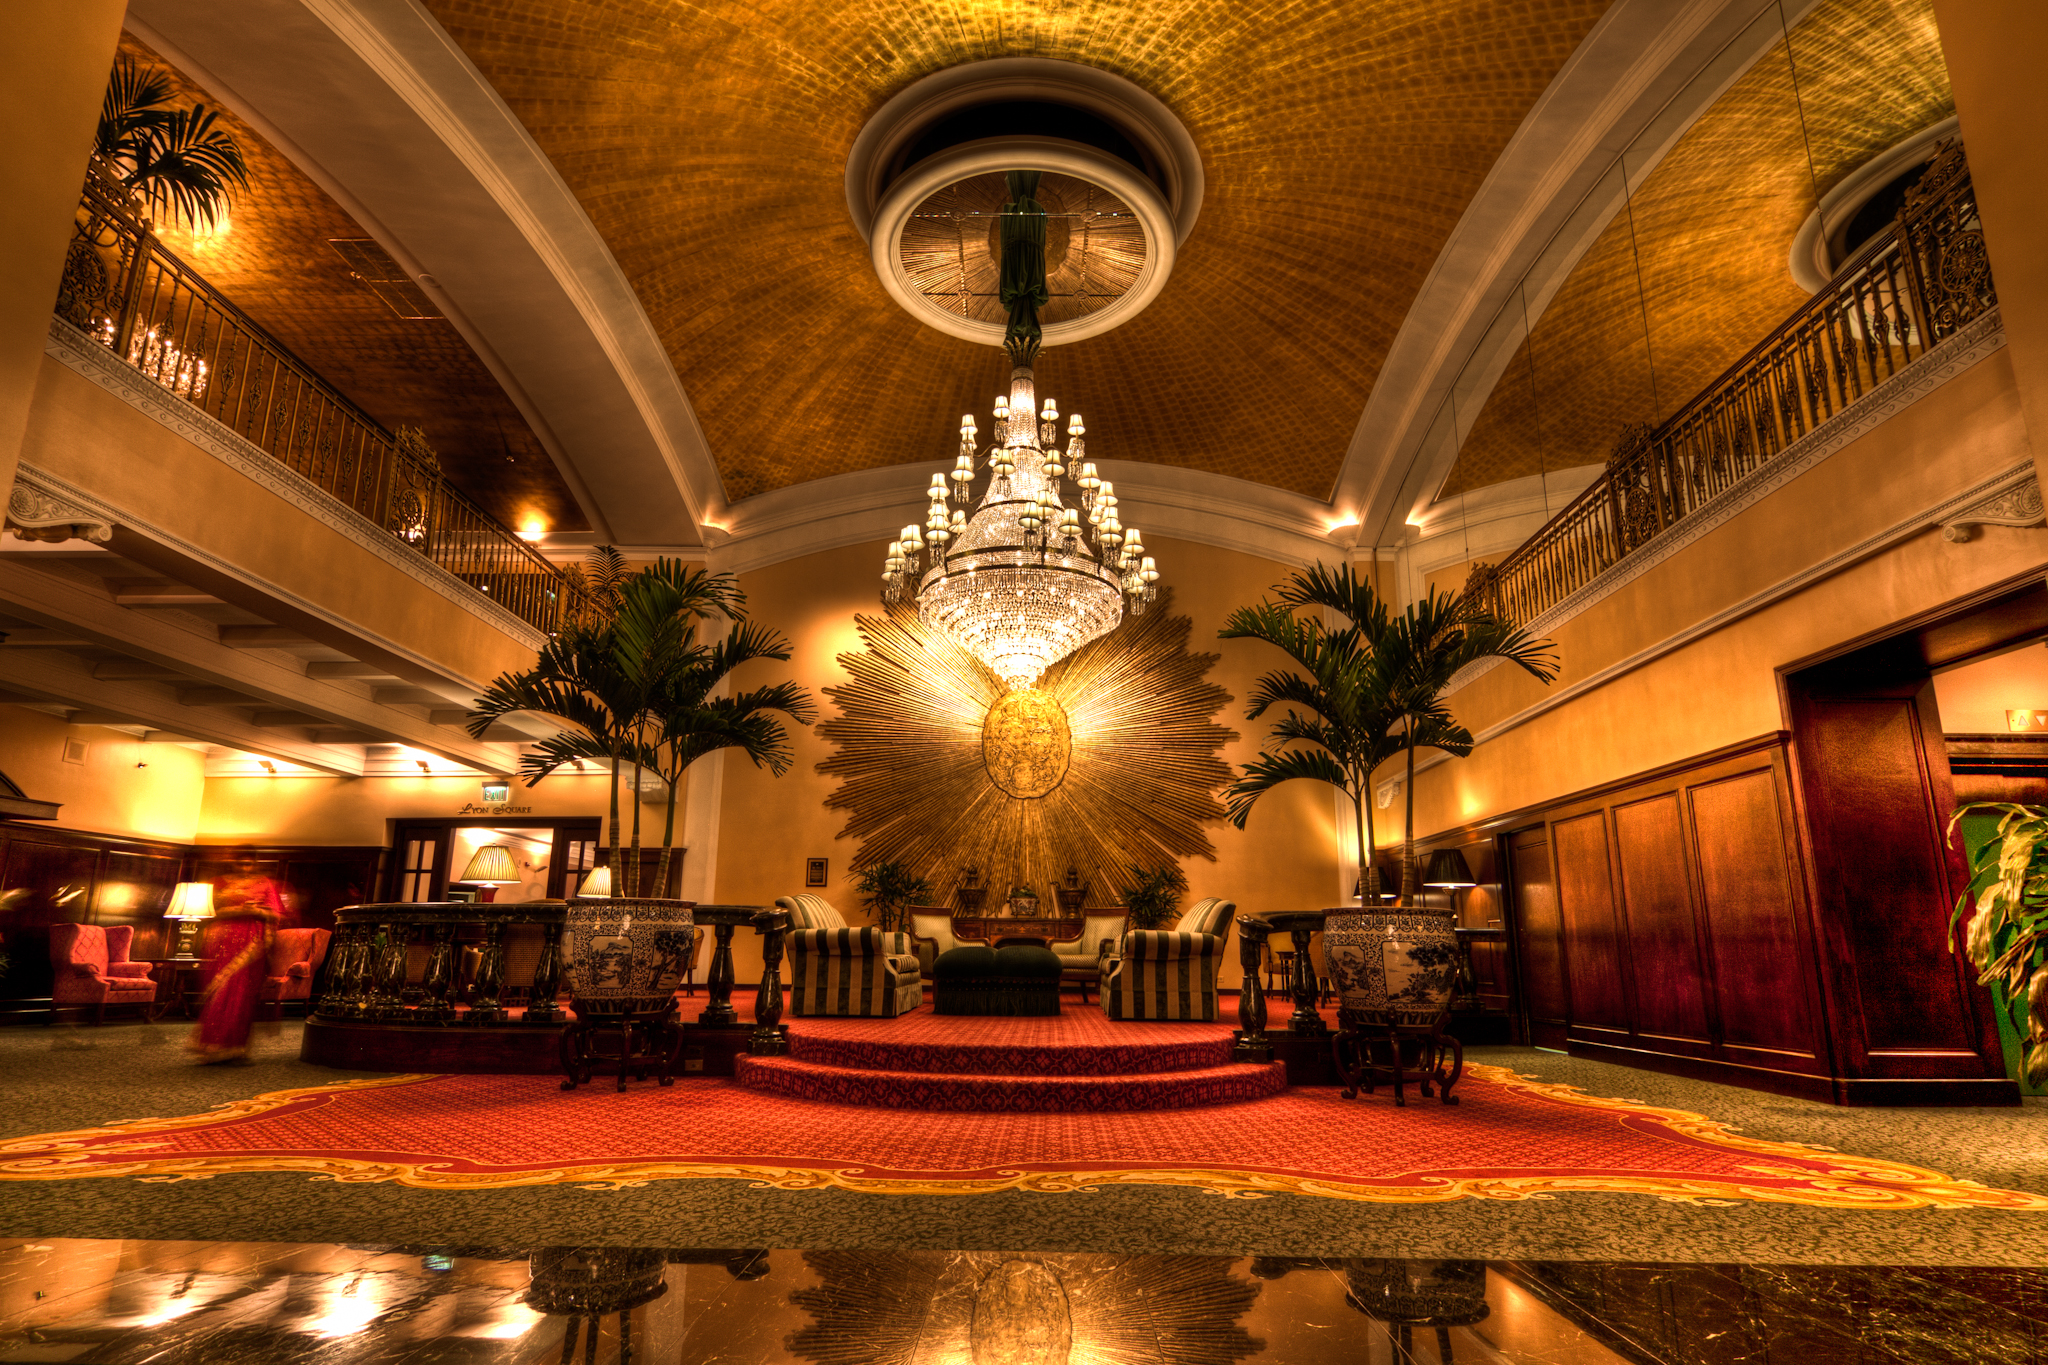 The Amway Grand Plaza Hotel